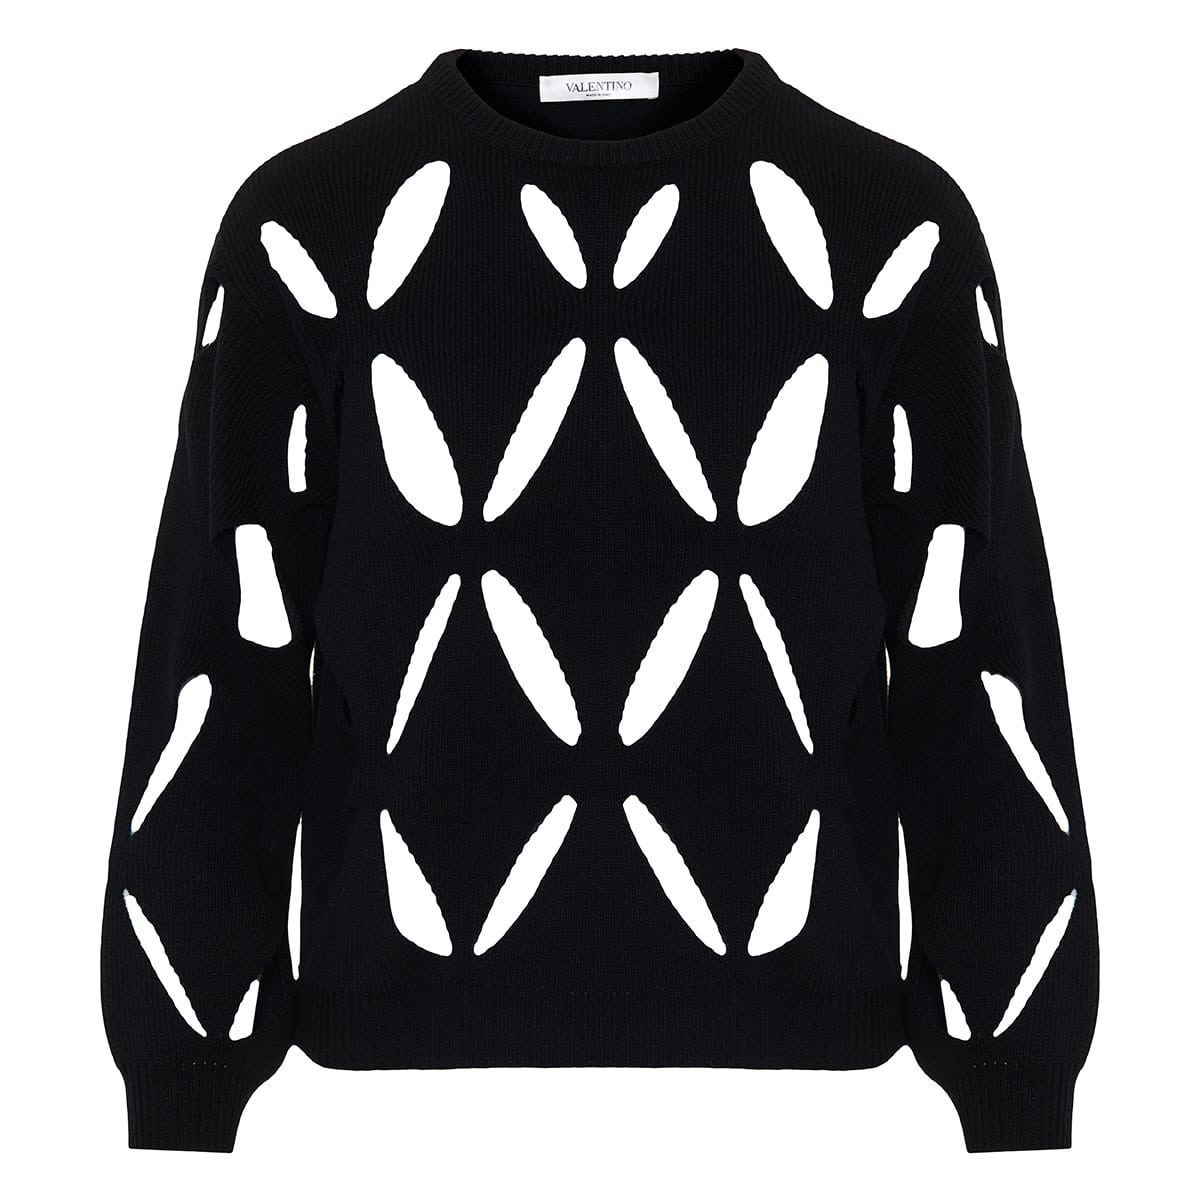 Wool sweater with cutout embroidery